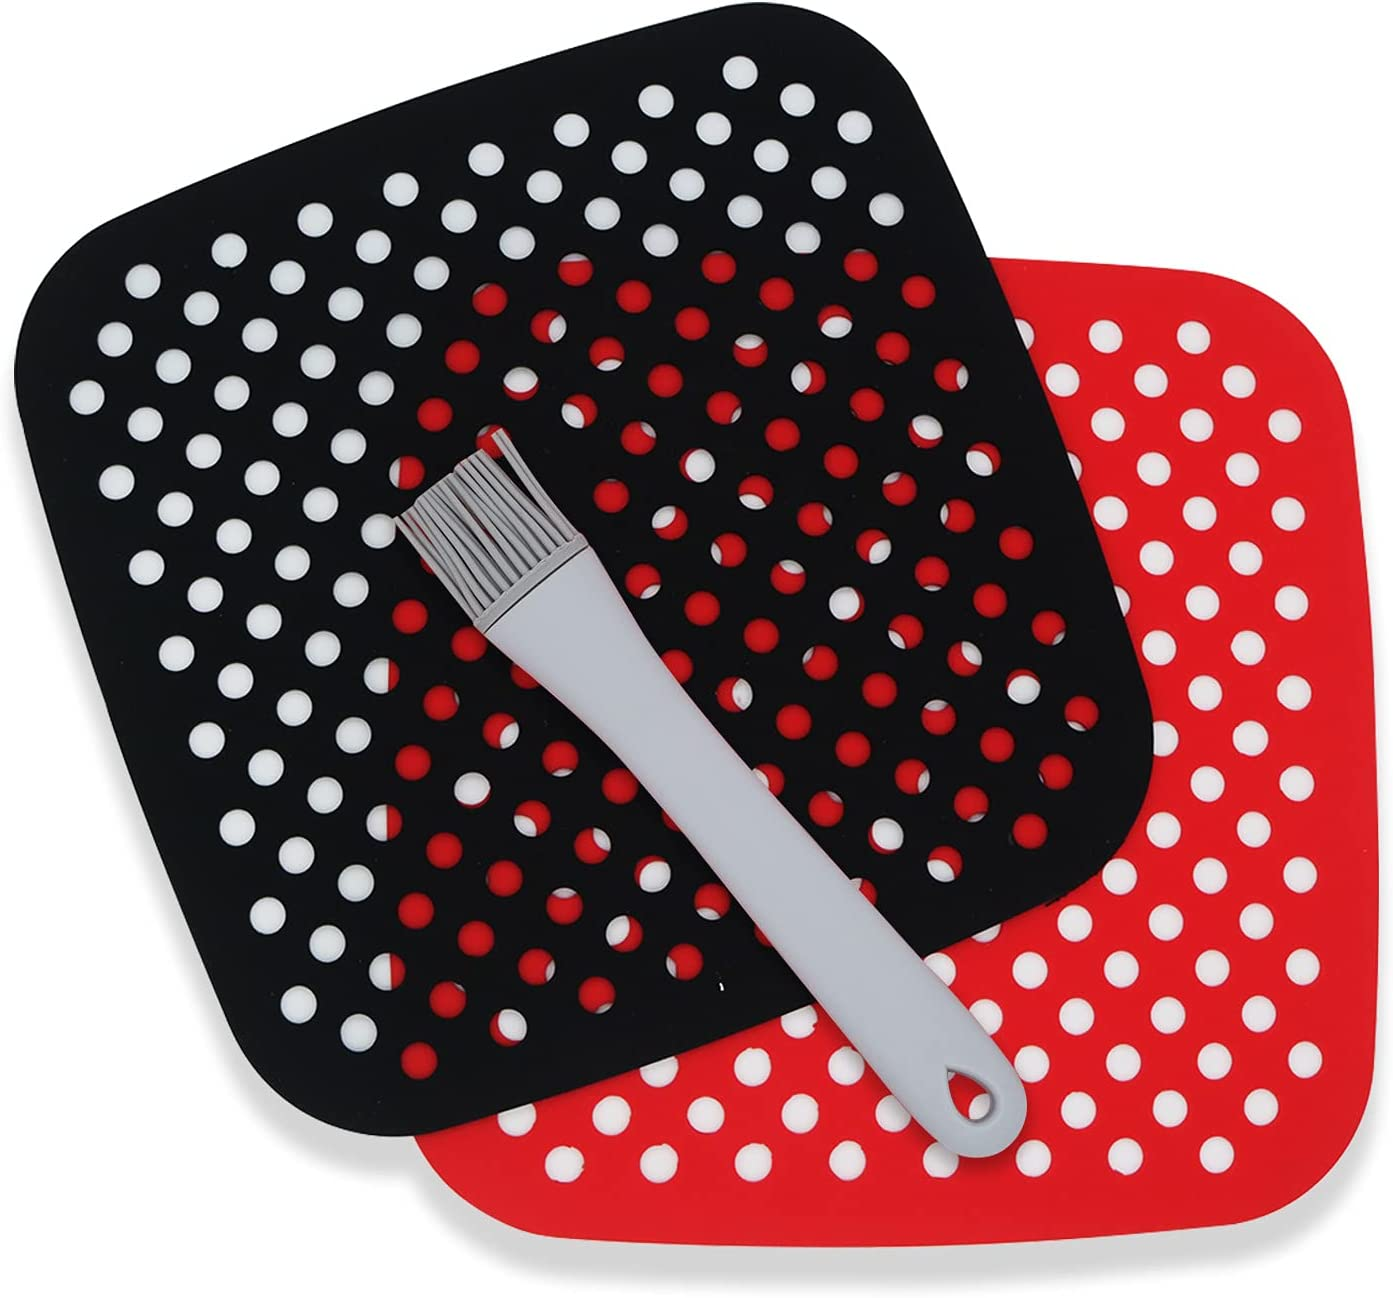 PanderHecop 2 Pcs Air Fryer Liners with Brush, Reusable 8.5 Inch Round Non-Stick Silicone Air Fryer Accessories Basket Mats for AirFryers,Bamboo Steamer,Oven (Red + Black)